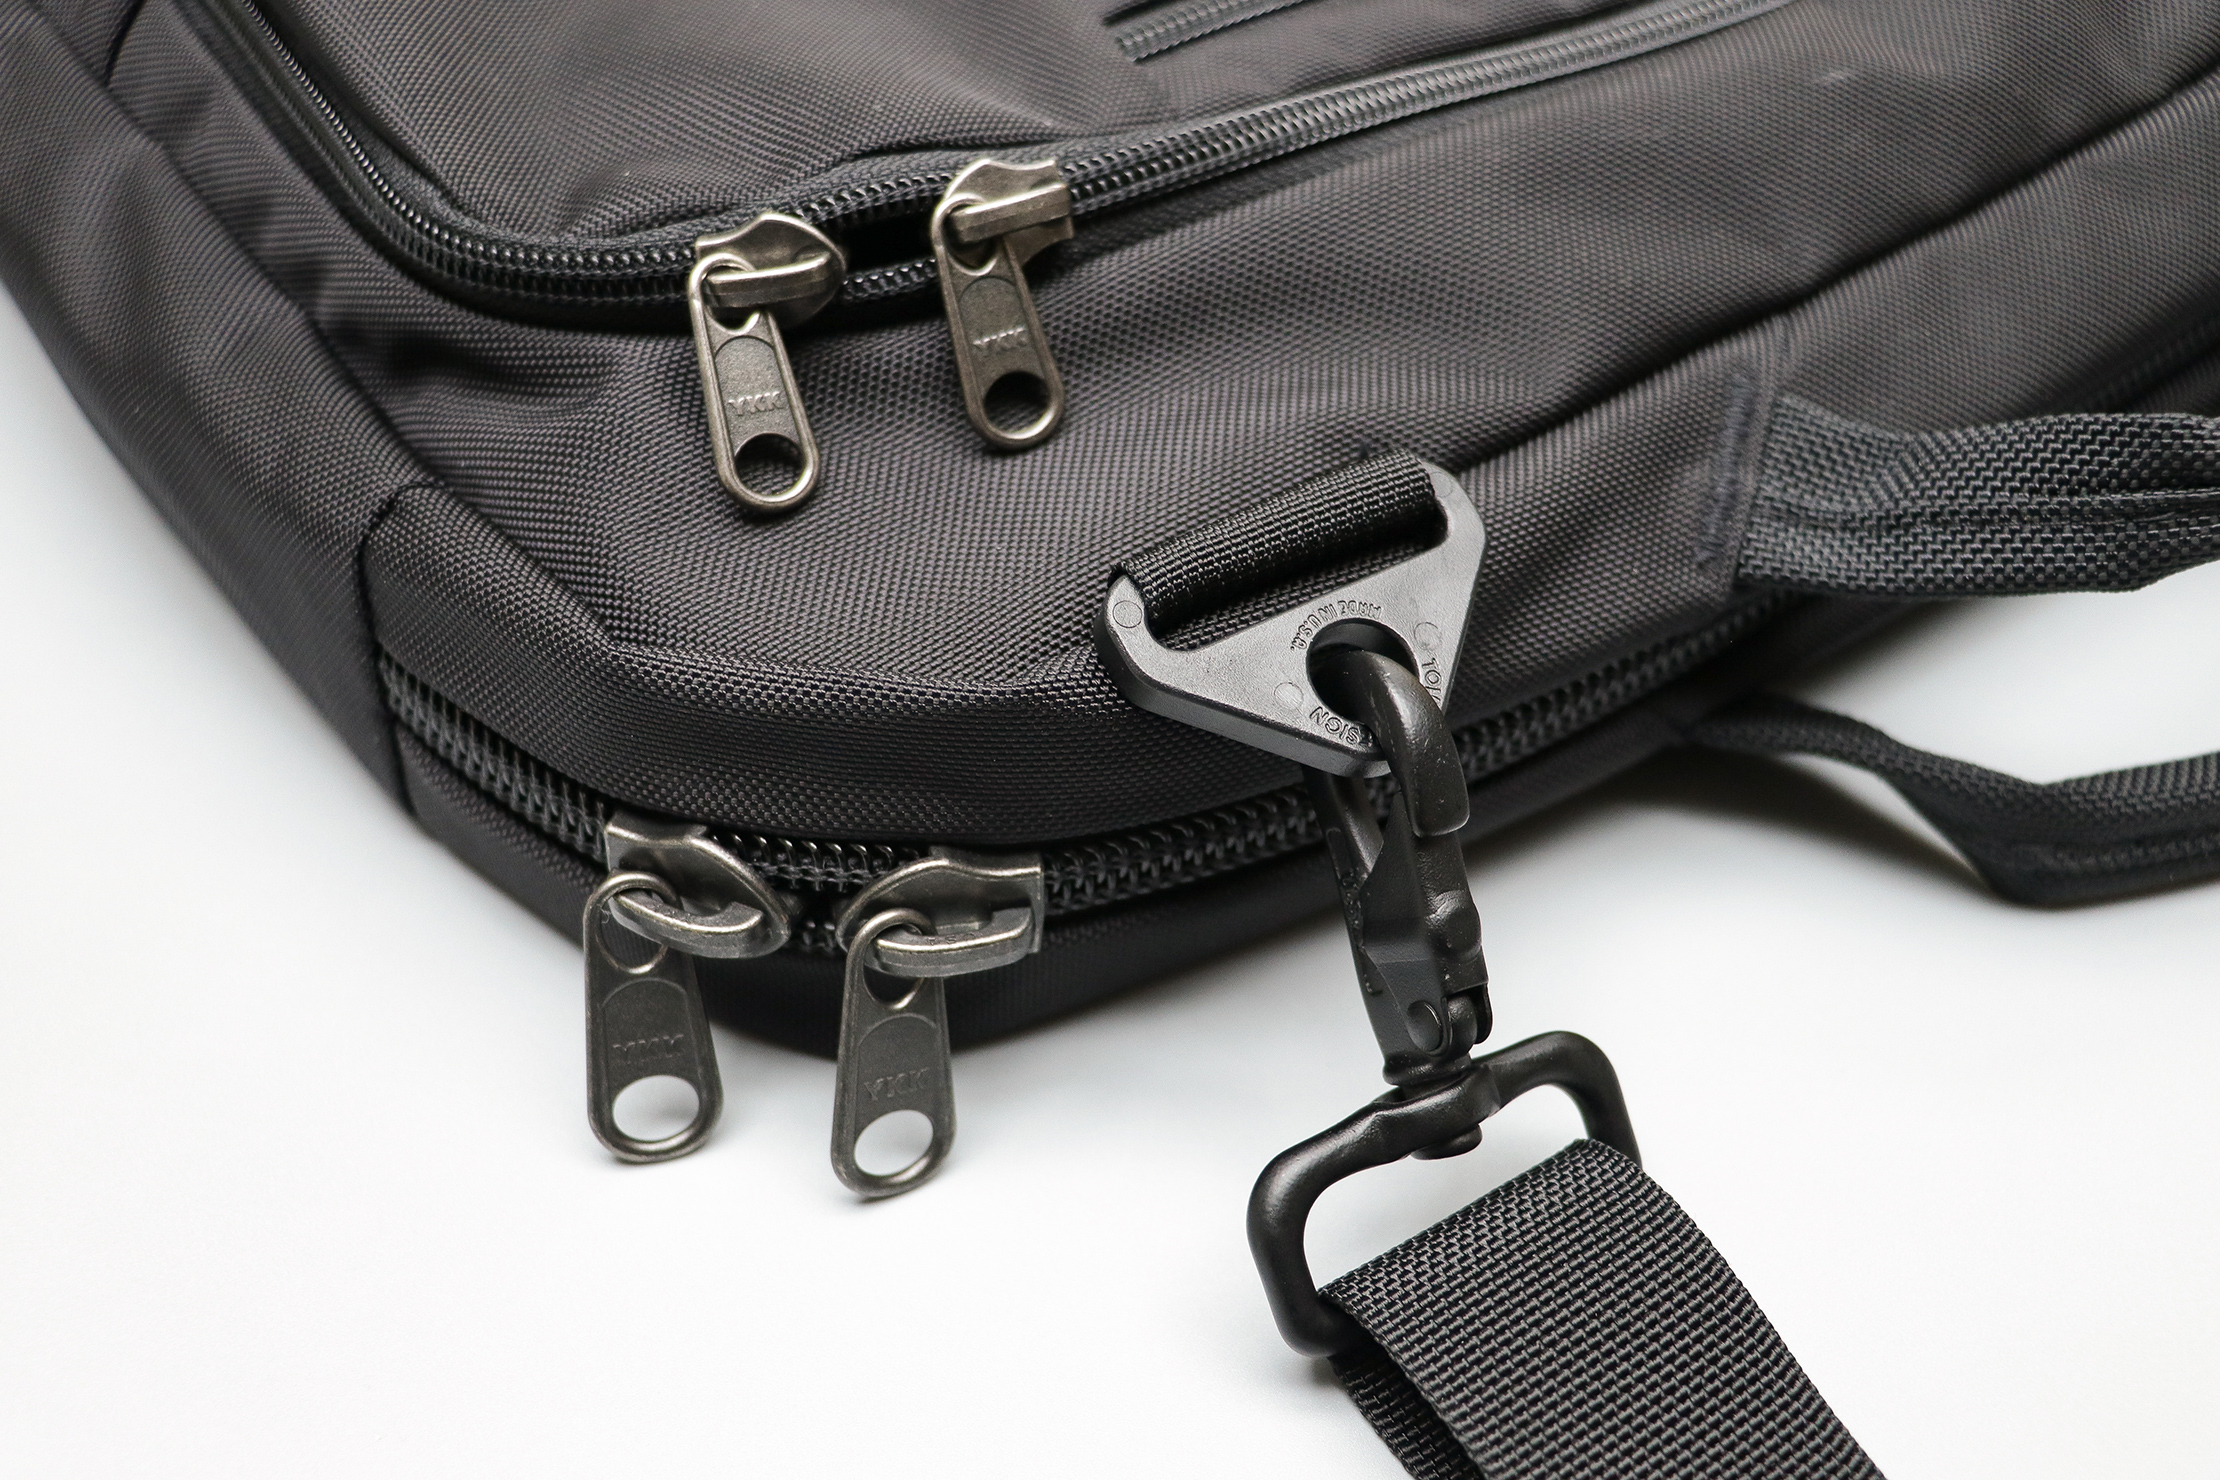 Tom Bihn Cadet Zippers and Hardware